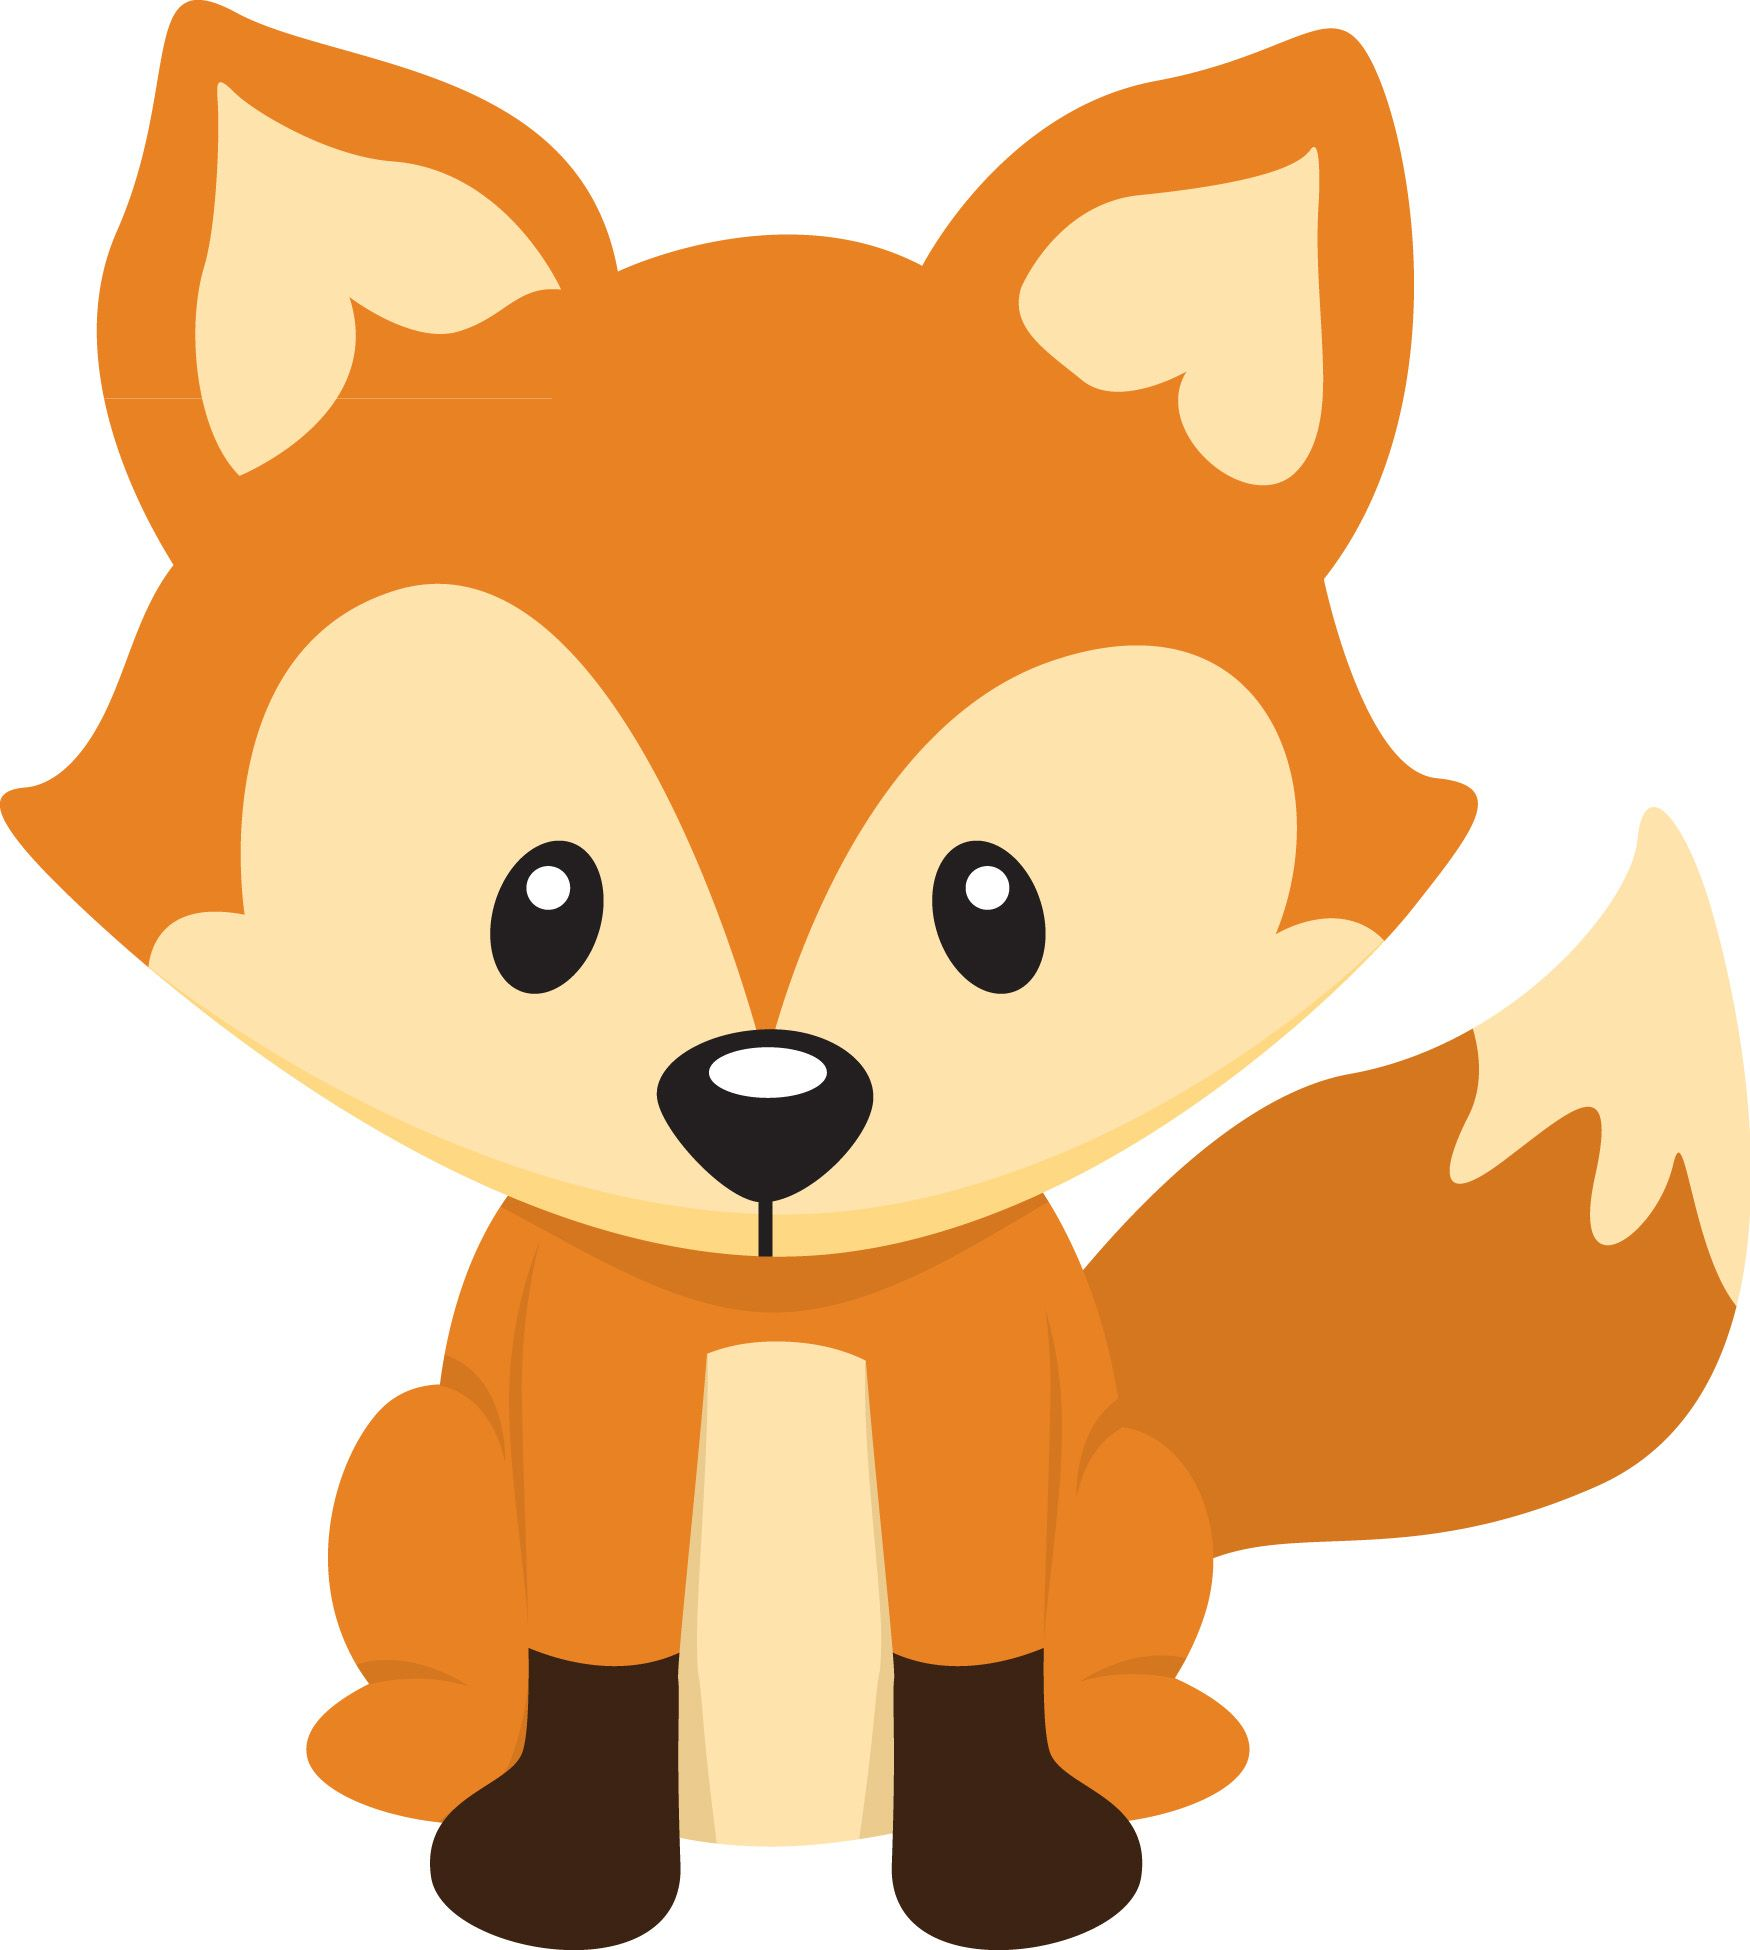 free fox clipart pictures clipartix peanuts pinterest art rh pinterest com fox clipart black and white fox clipart cute